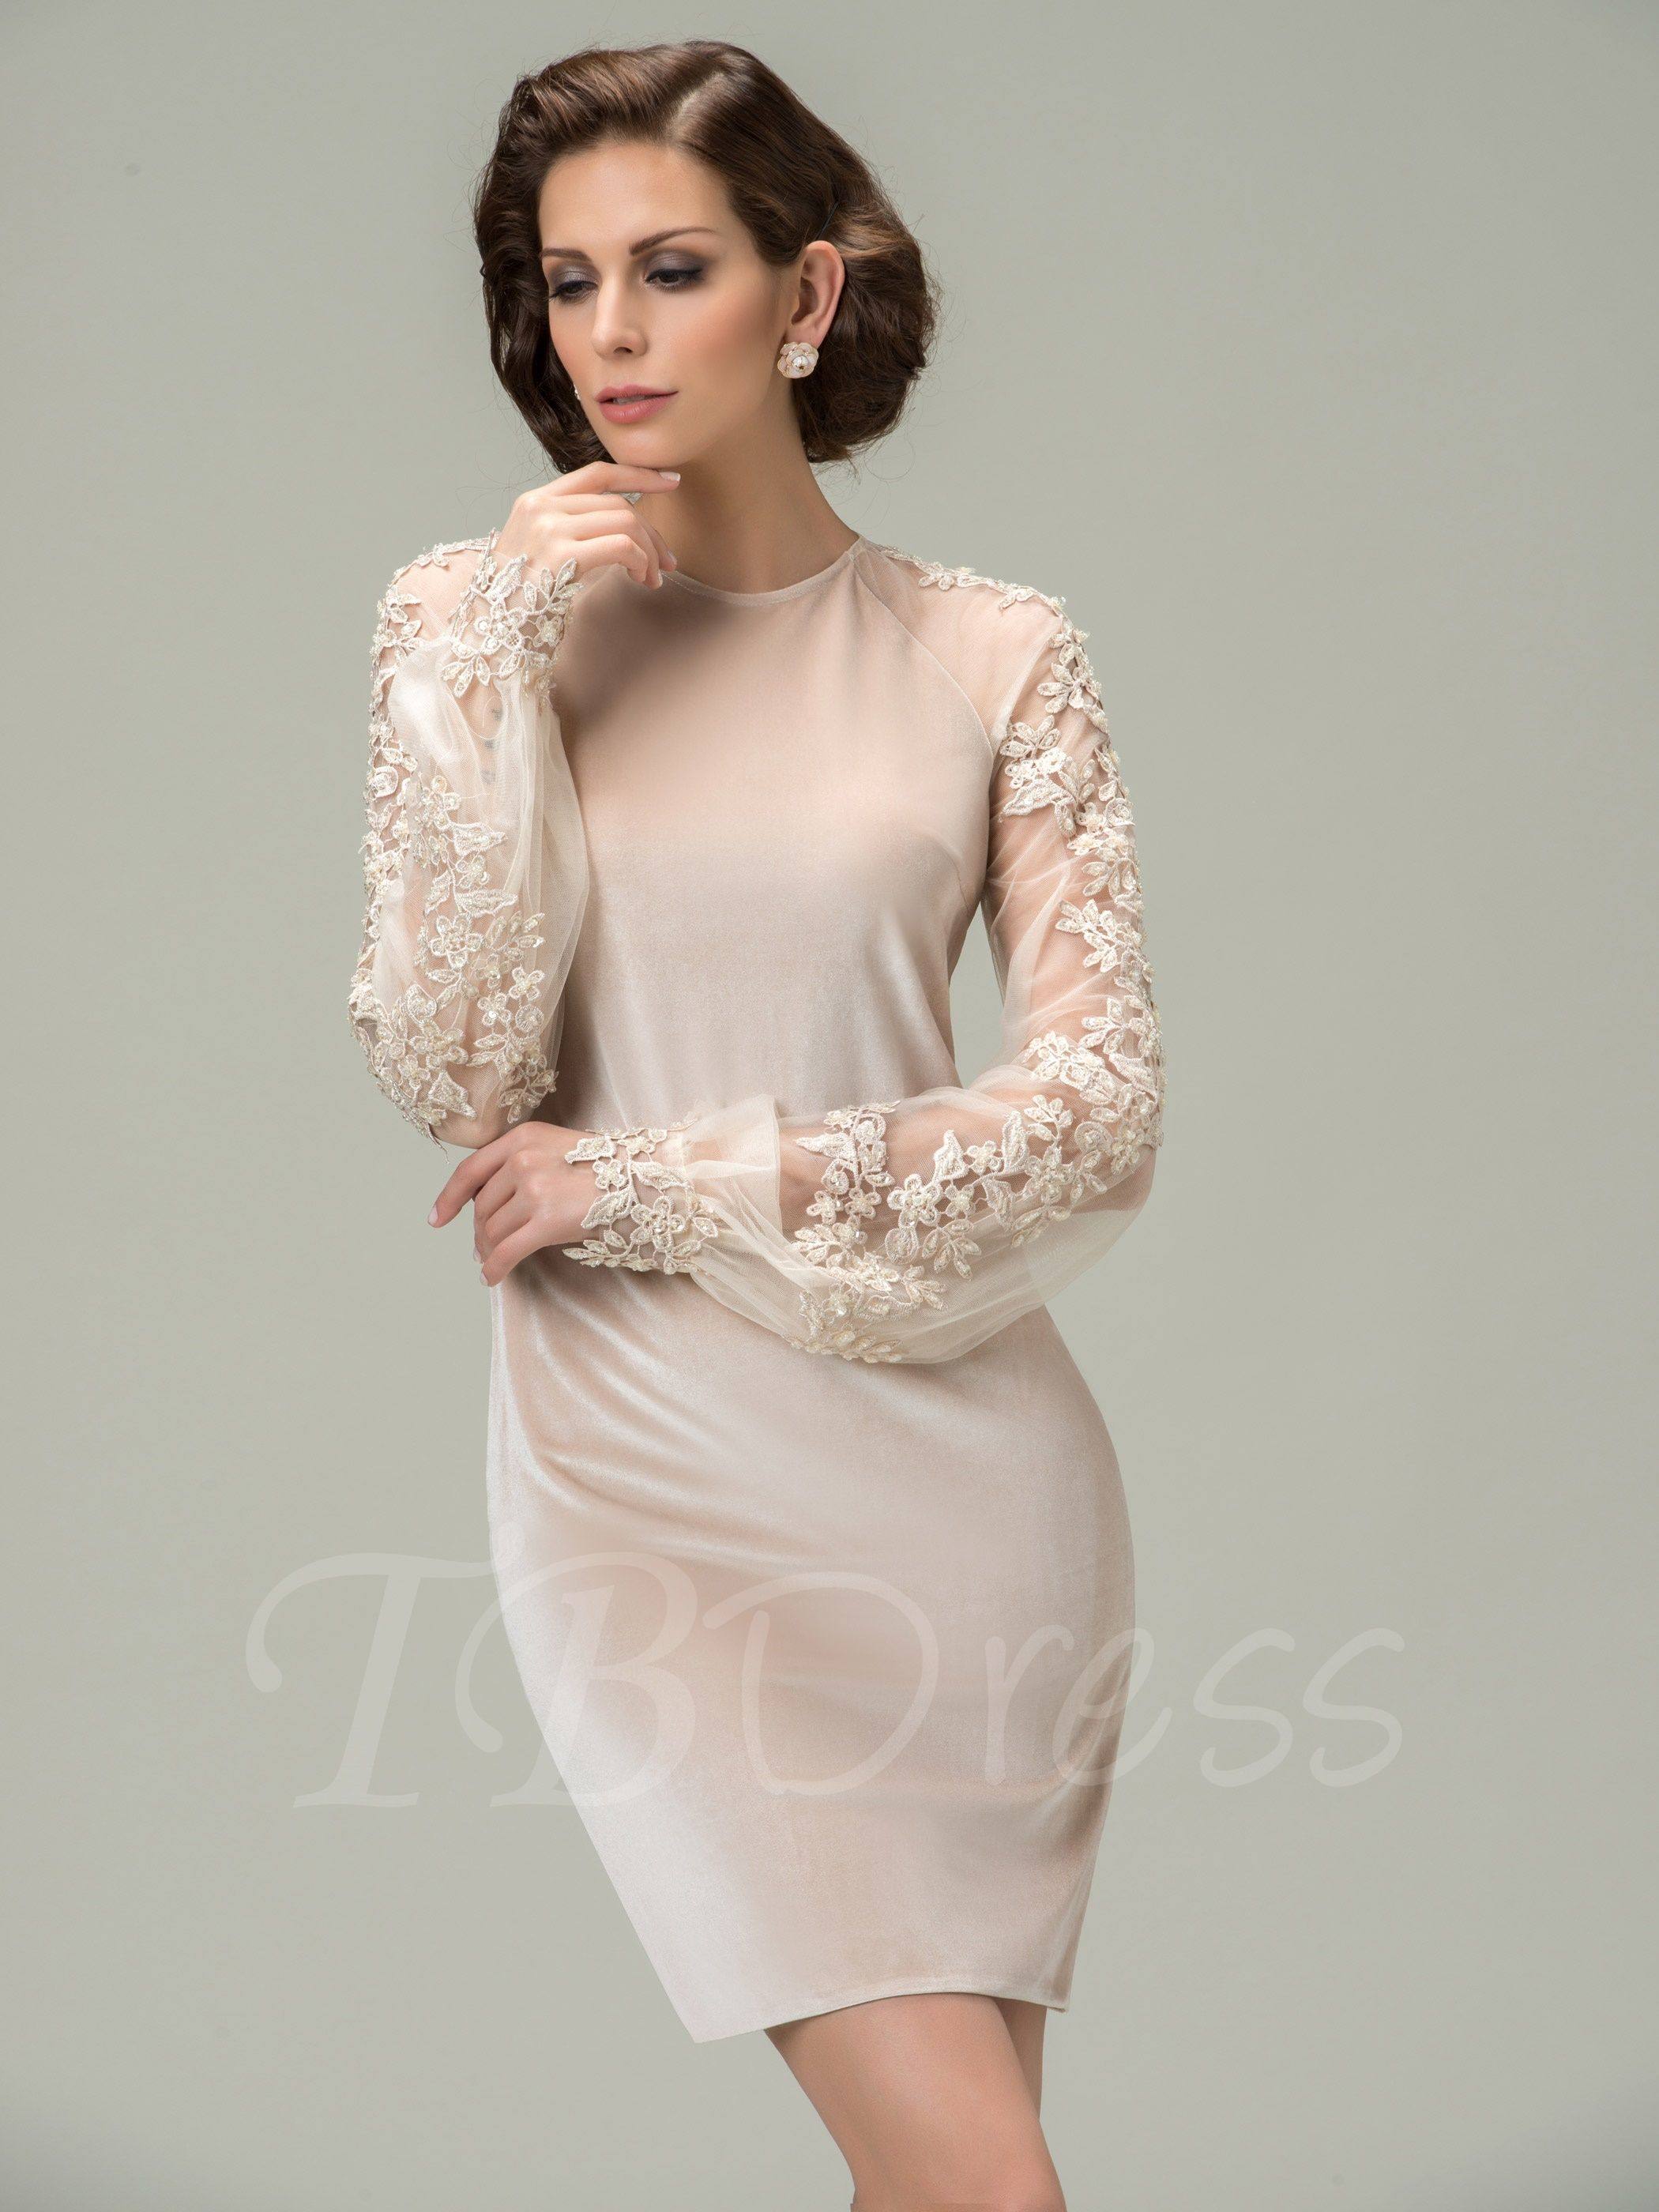 Beach wedding mother of bride dresses  Jewel Appliques Long Sleeves Short Mother of the Bride Dress  Bride